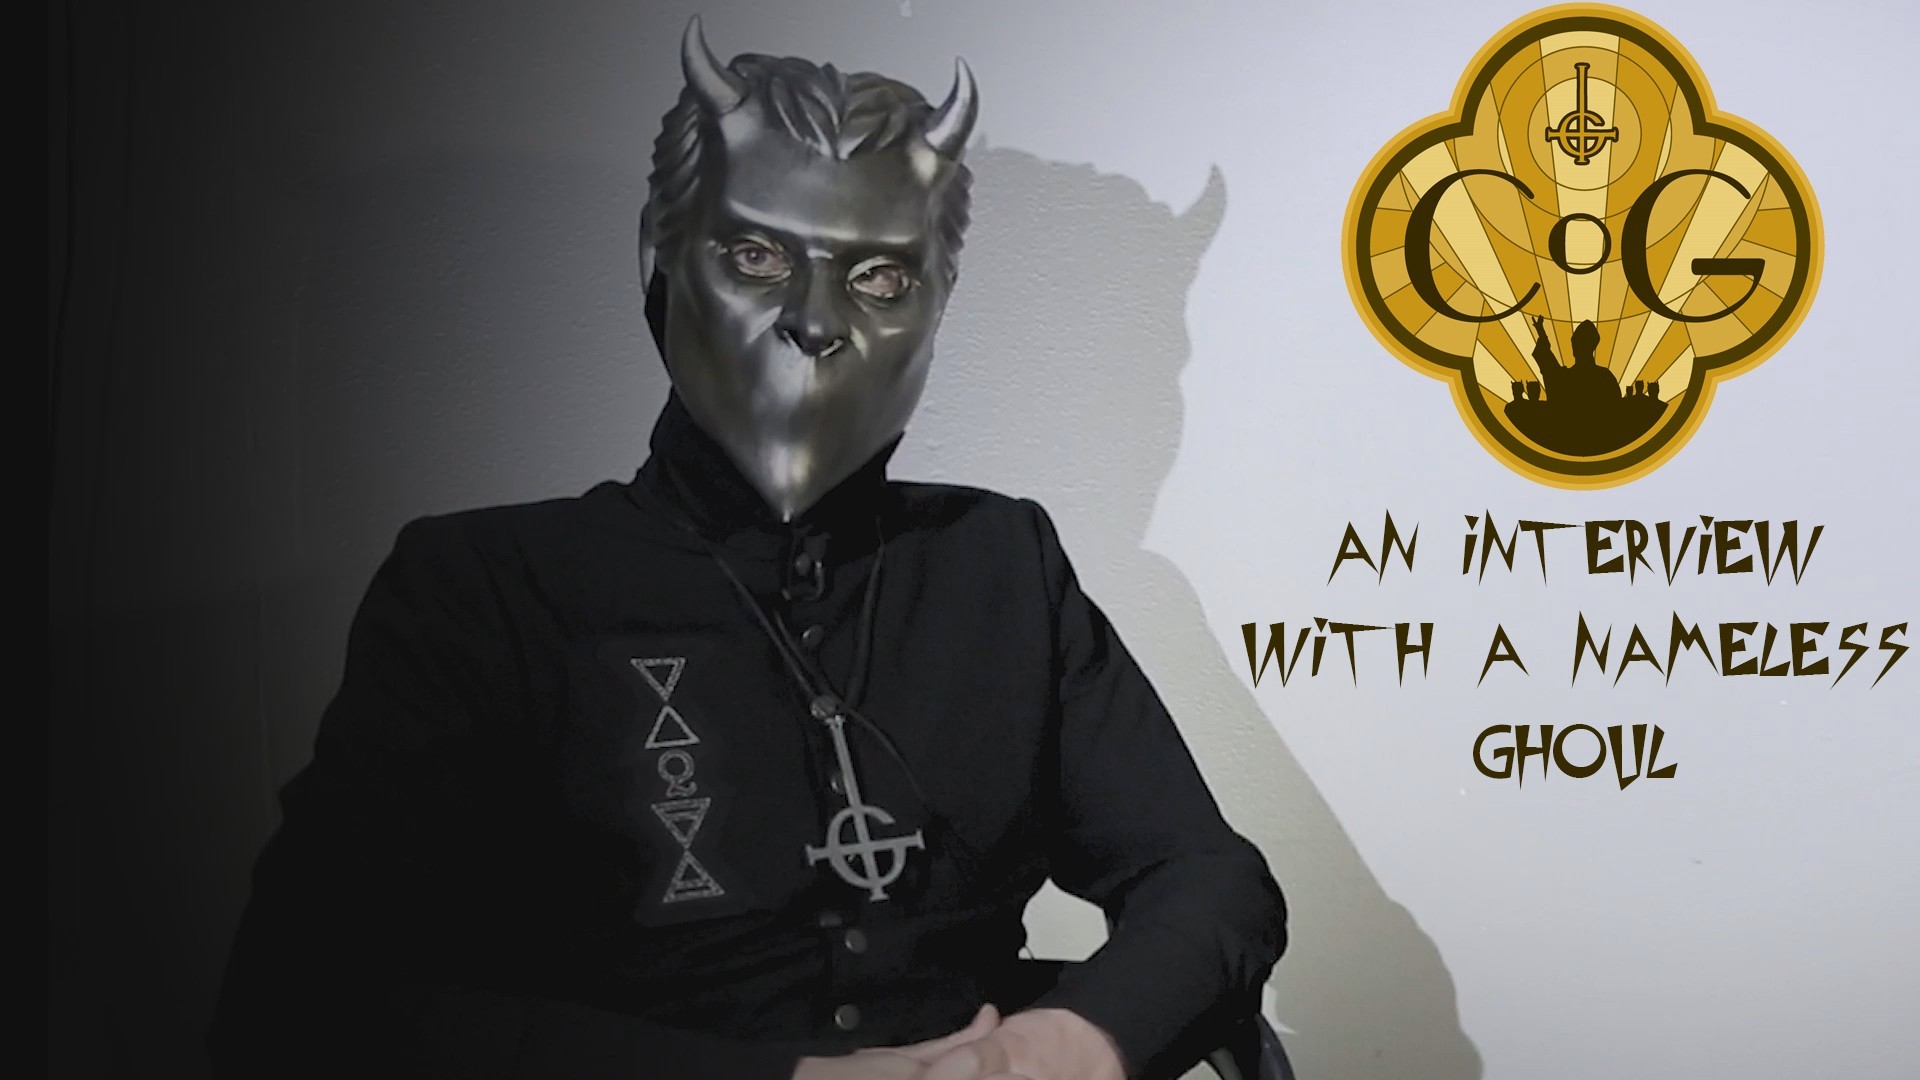 We Interviewed A Nameless Ghoul From Ghost